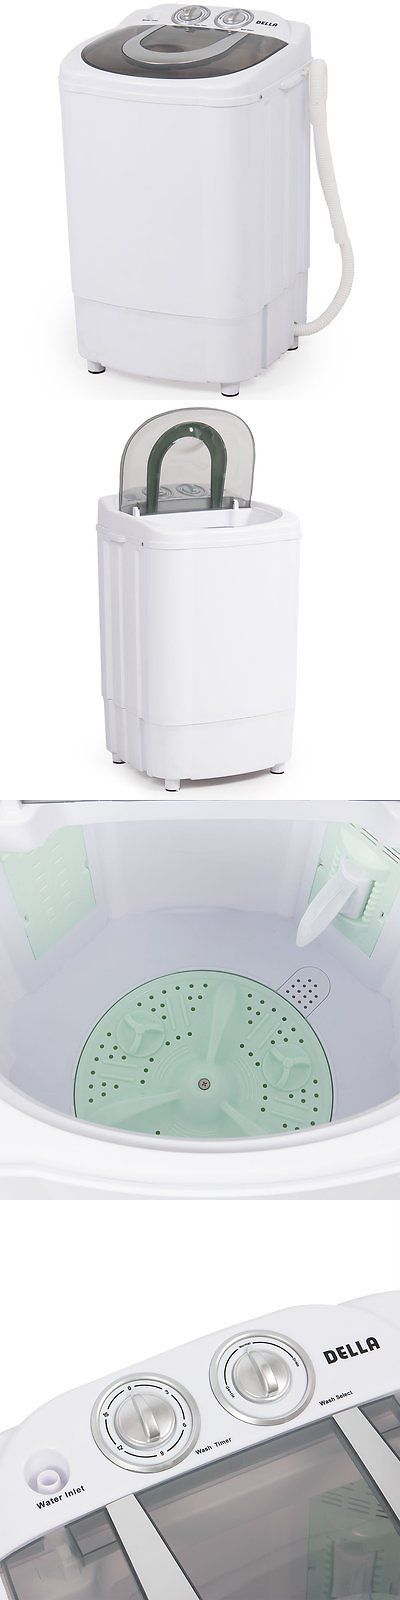 Washing Machines 71256: Della Mini Portable Washing Machine Spin Wash 8.8 Lbs Capacity Compact Laundry -> BUY IT NOW ONLY: $77.15 on eBay!